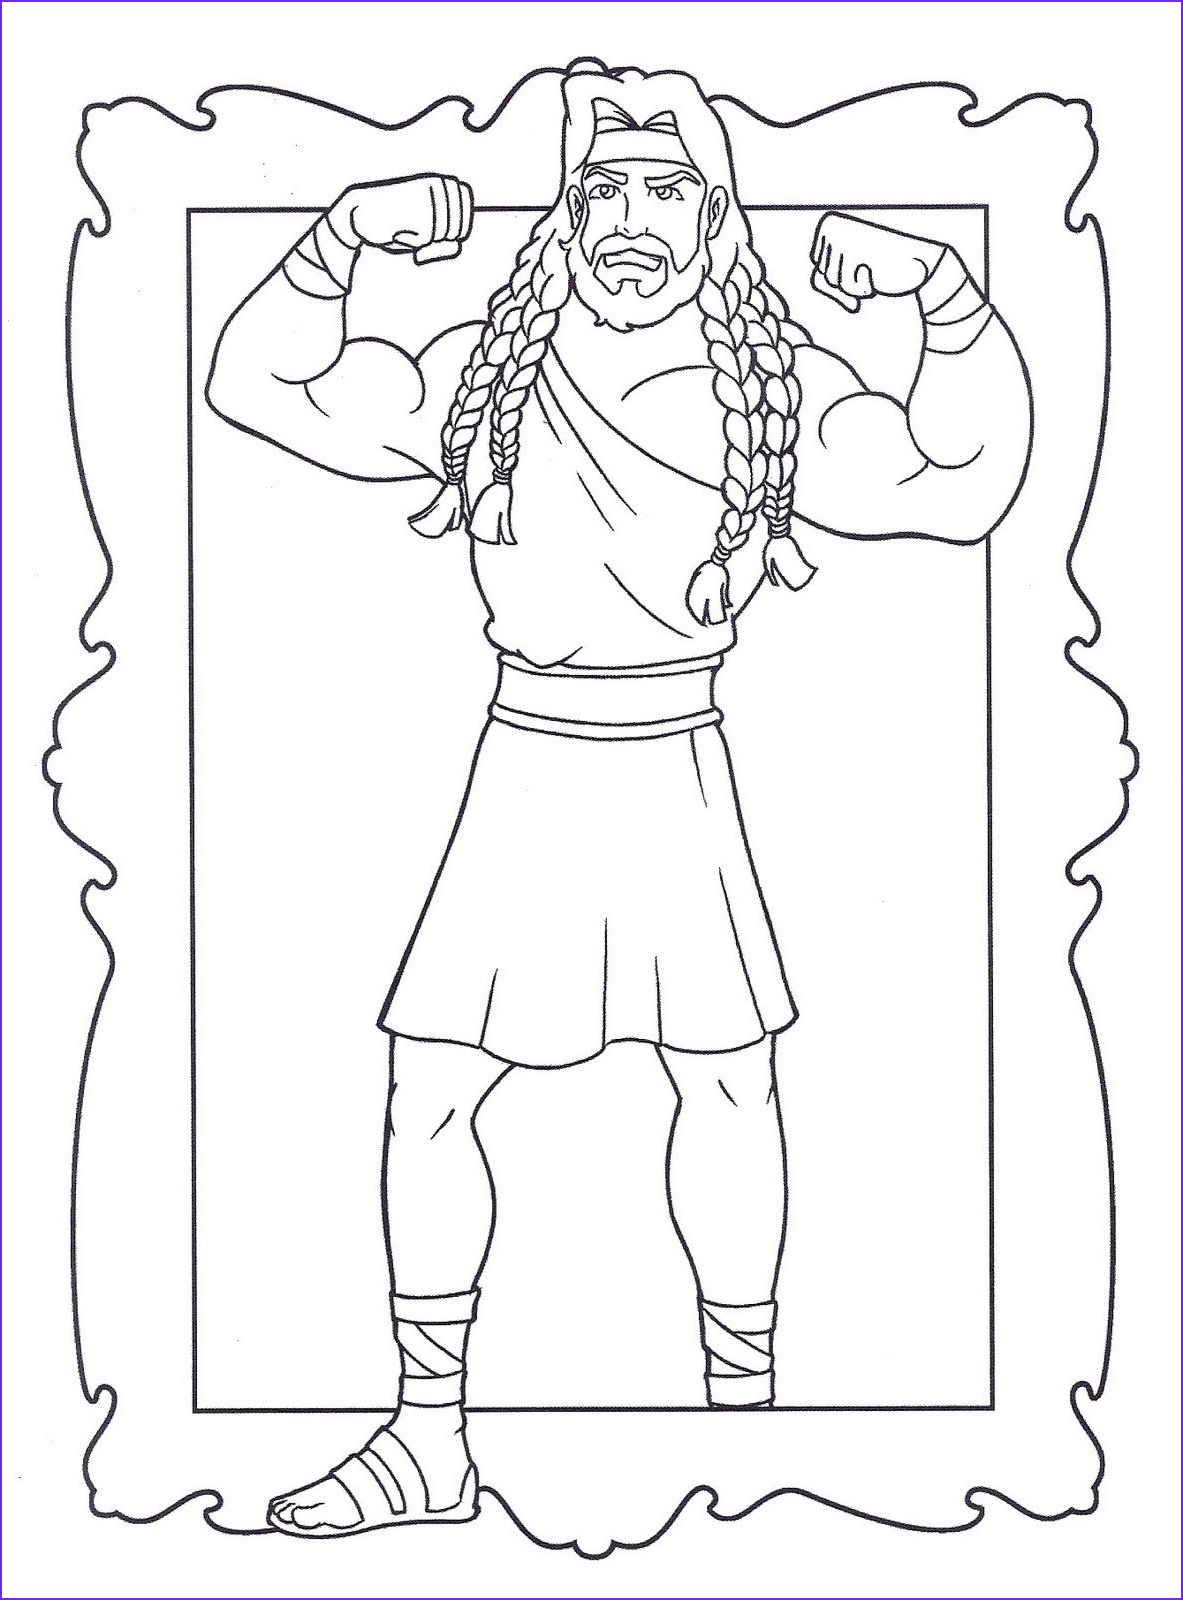 Samson Coloring Pages Inspirational Image Pin by Stephani Ciezki On Preschool Bible Lessons